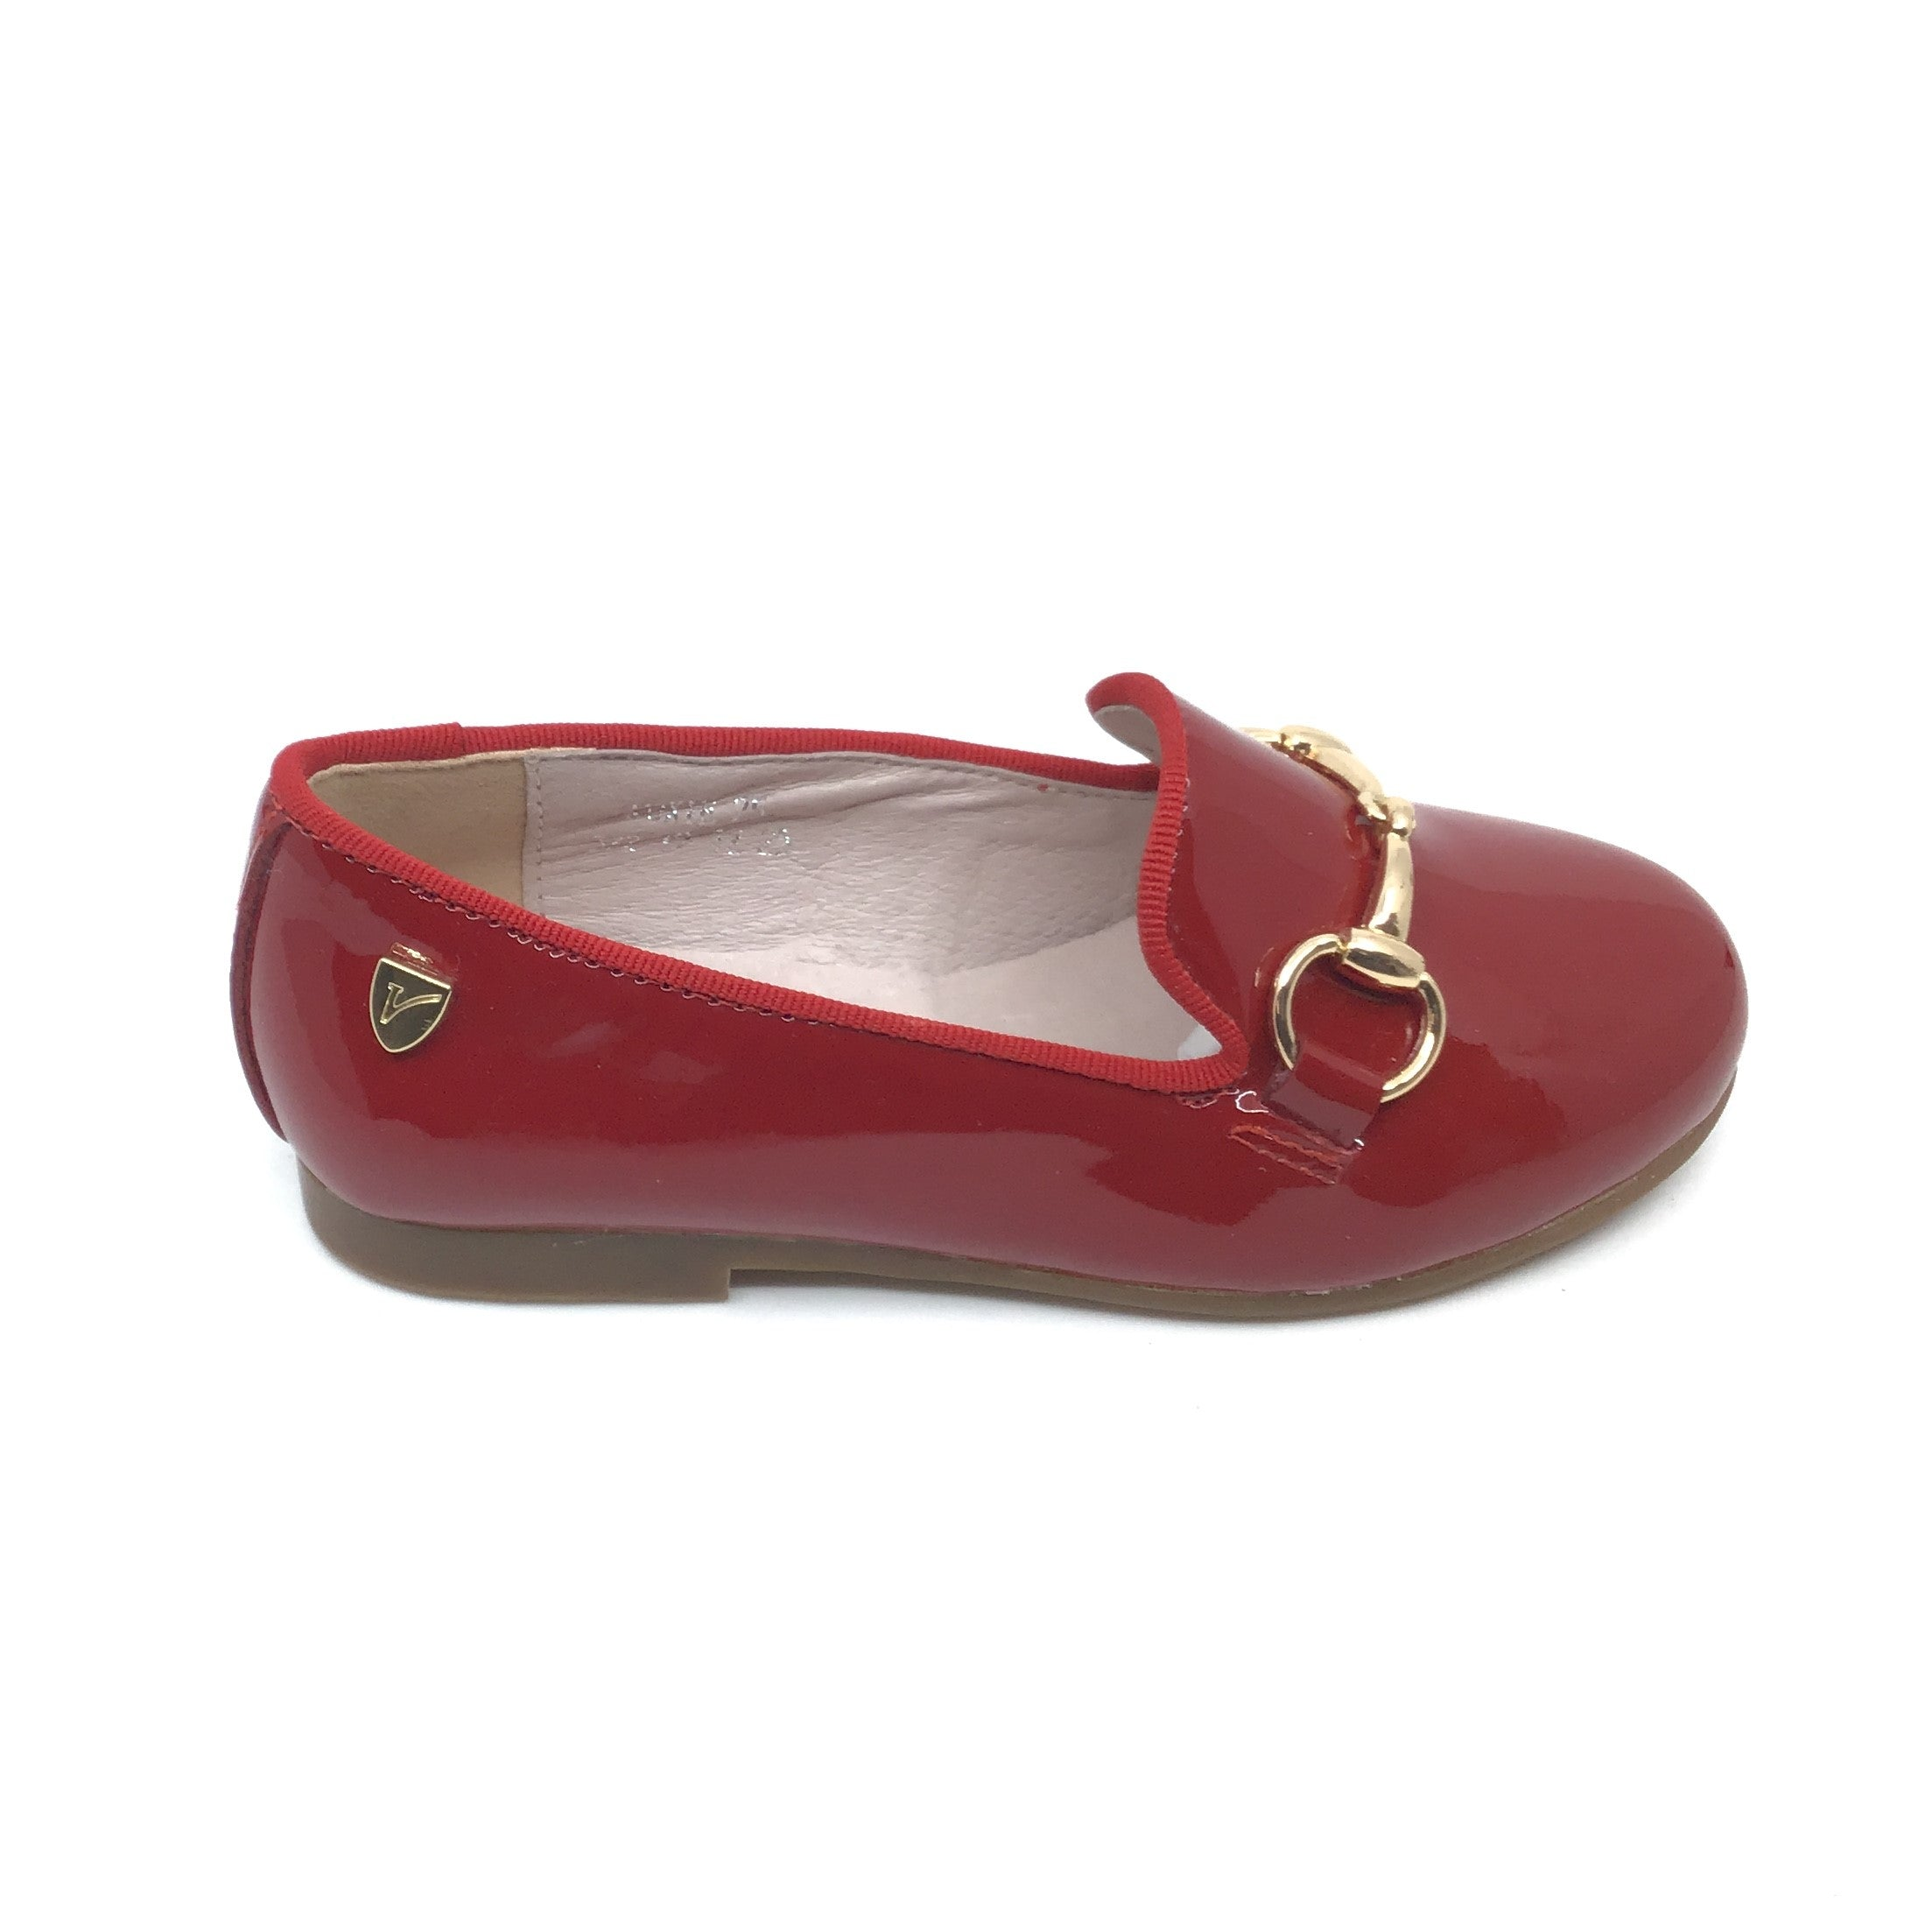 Venettini Red Patent Slip On with Chain